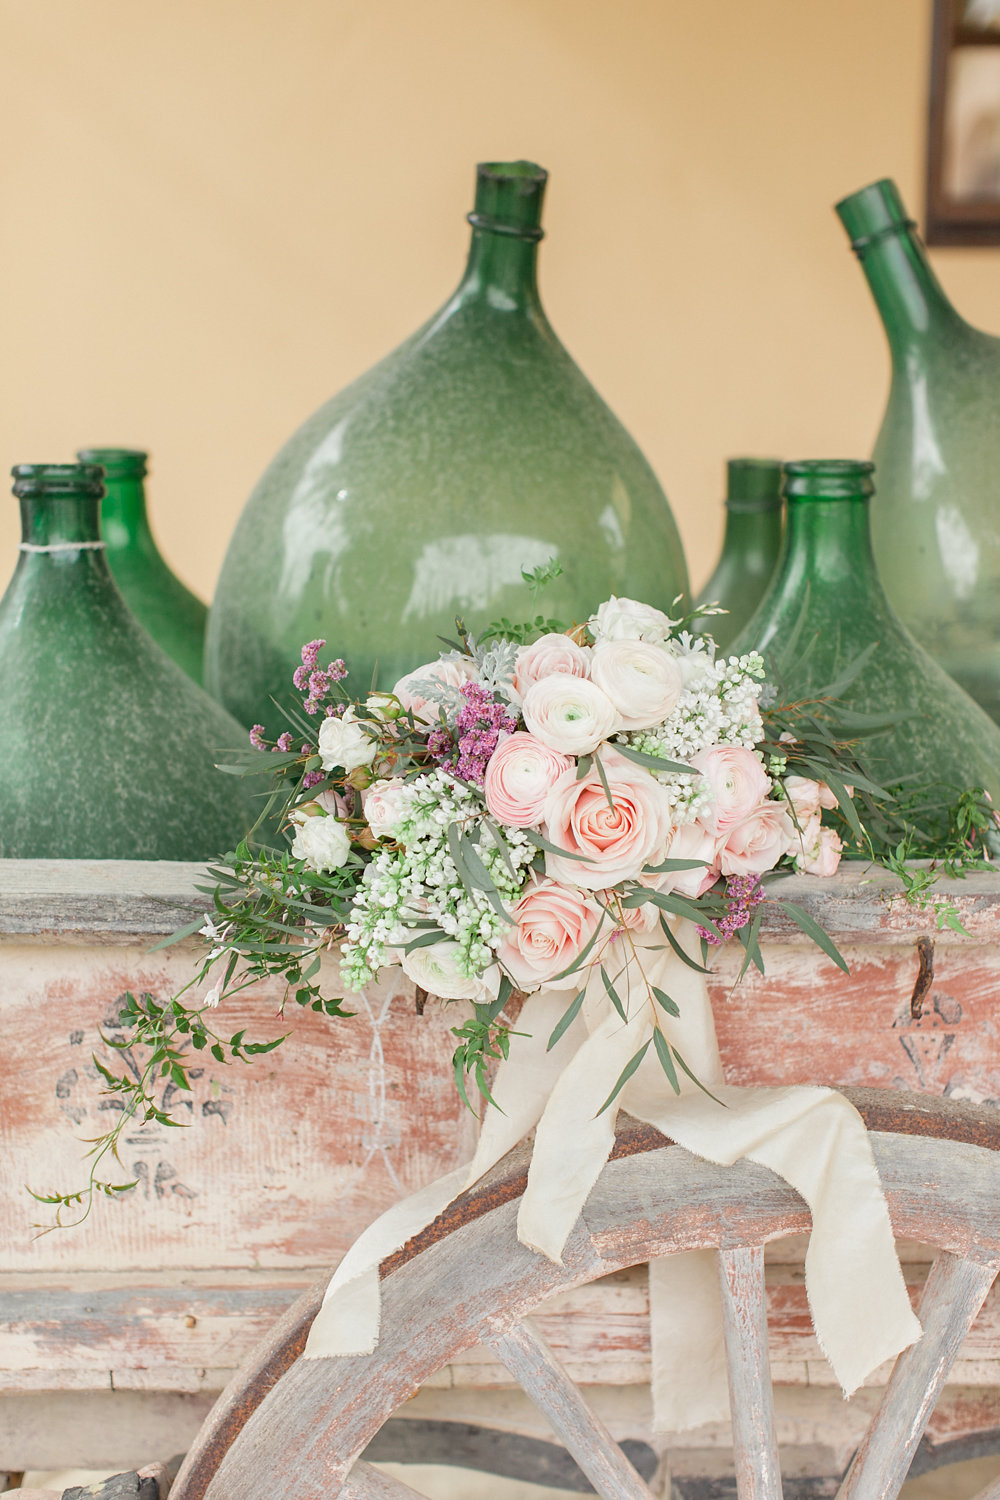 Tuscany Italy Wedding Photographer Roberta Facchini 208